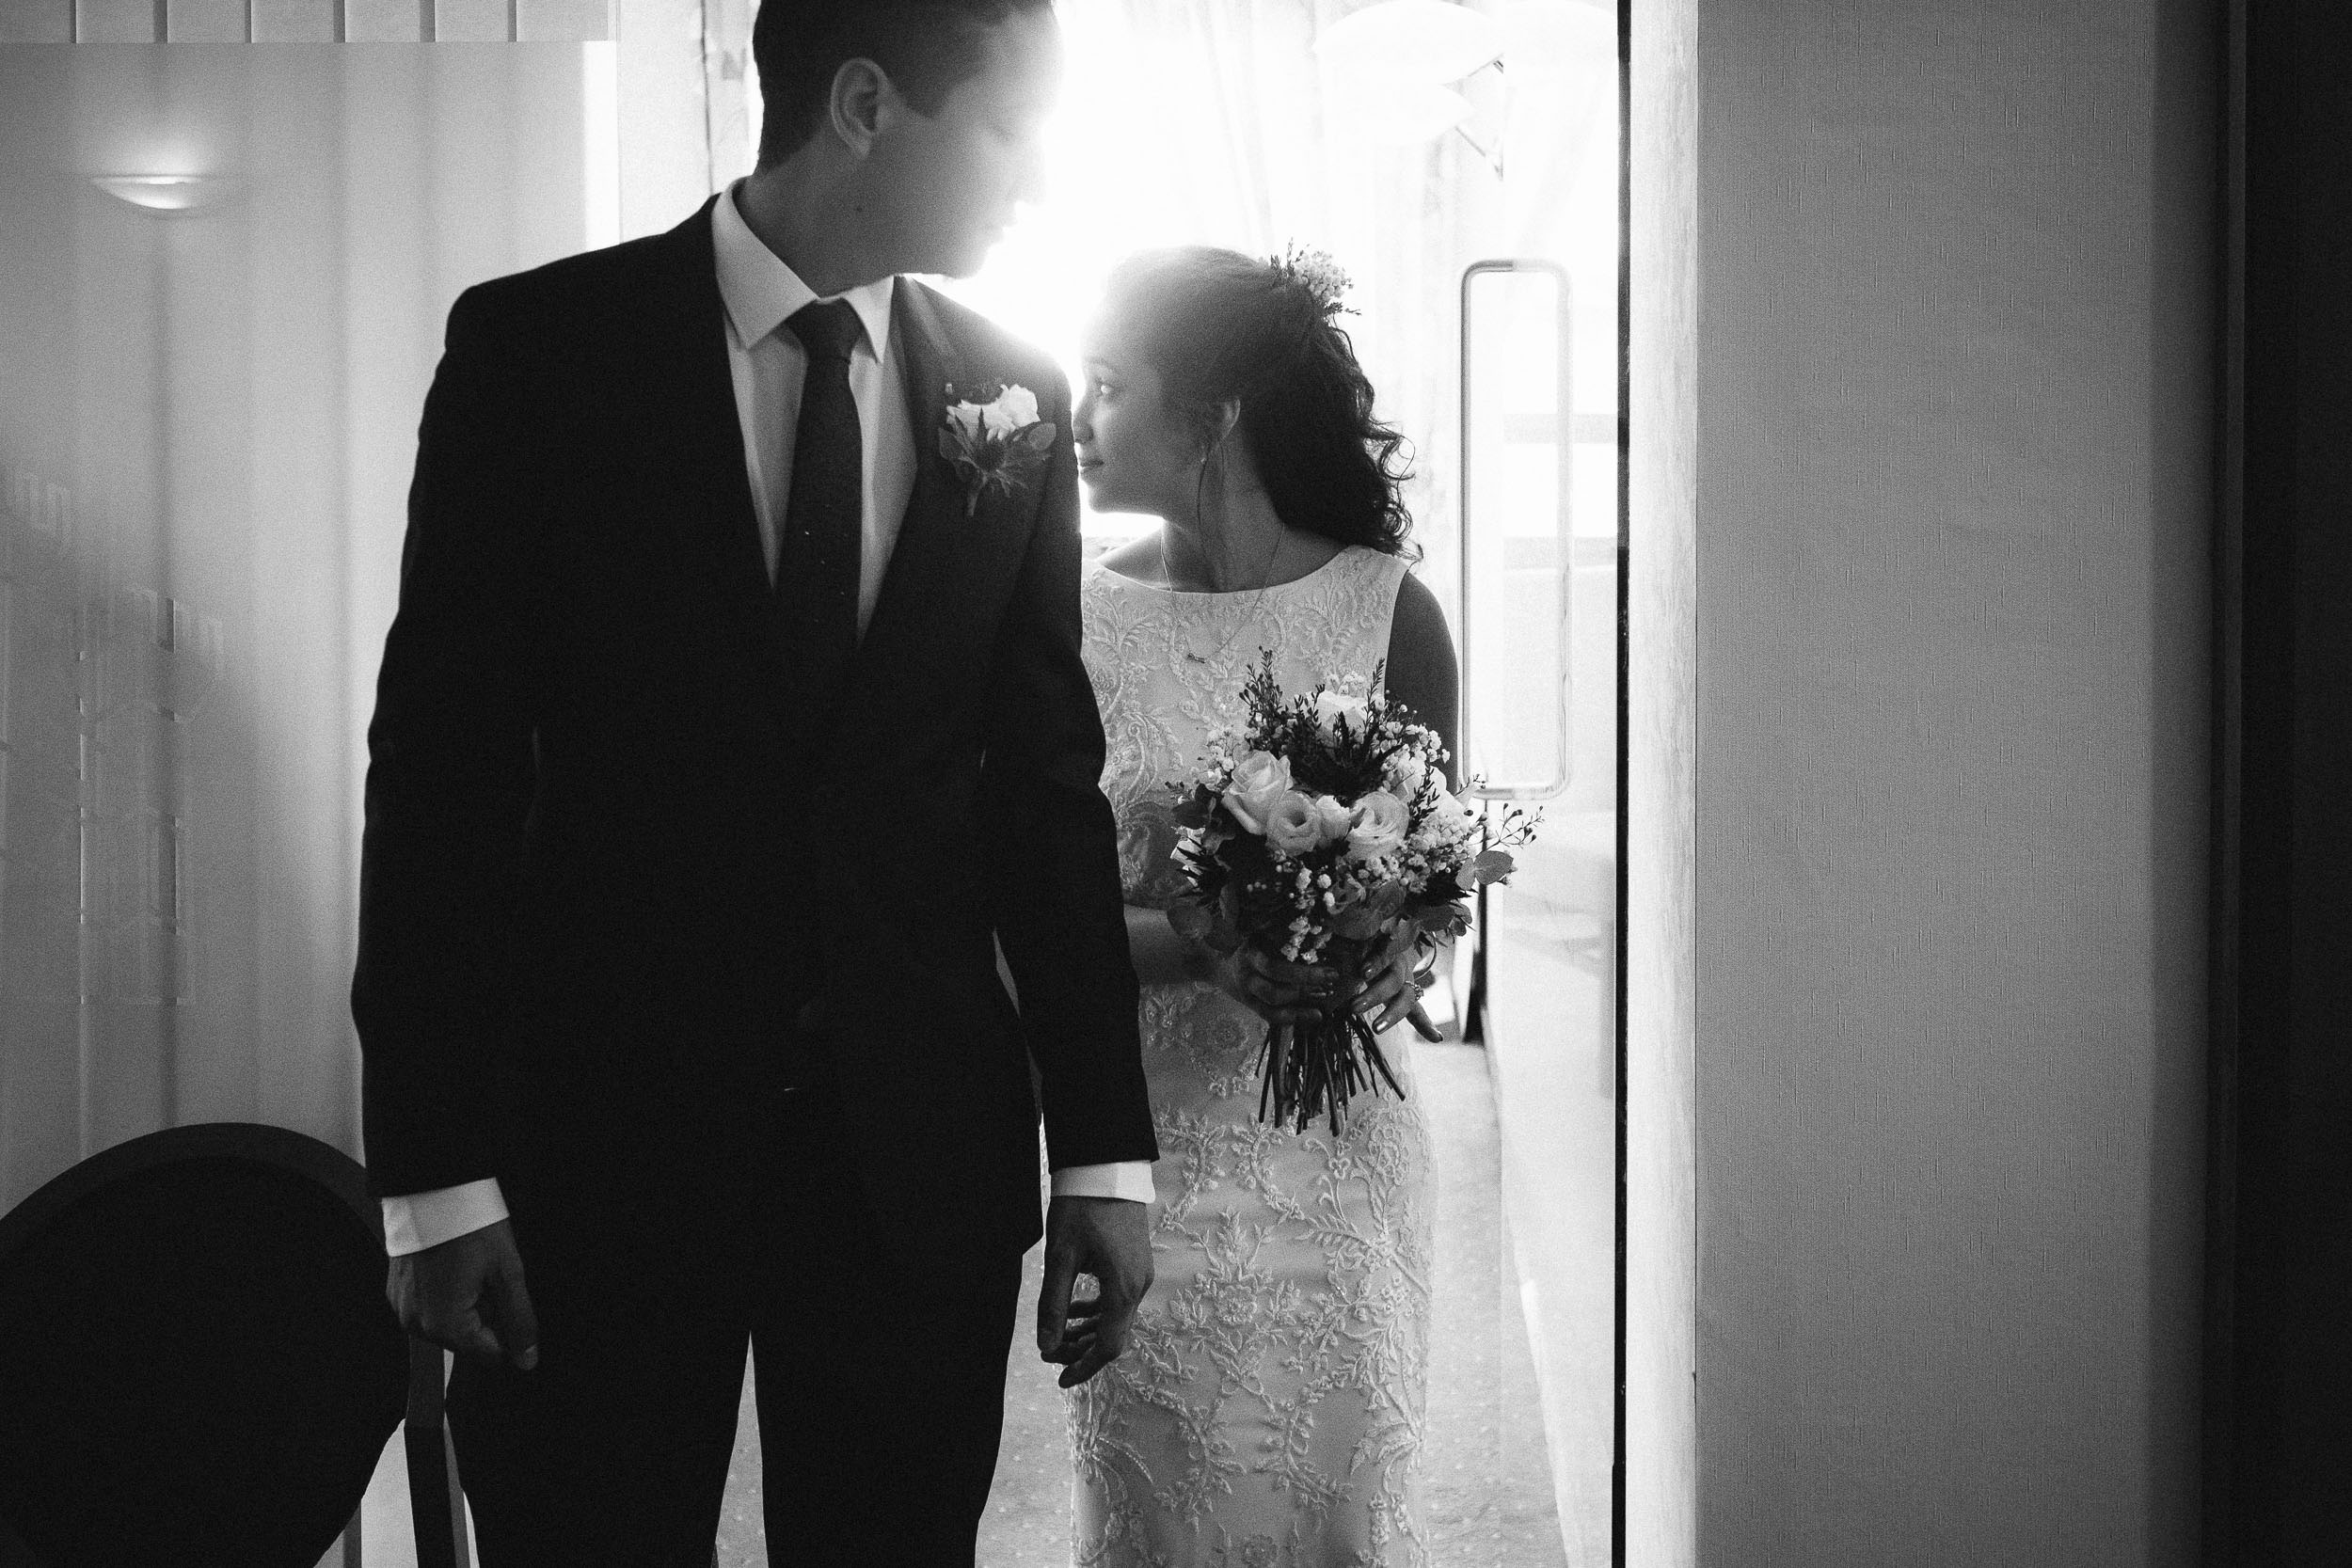 Black and white photo of bride and groom leaving wedding ceremony